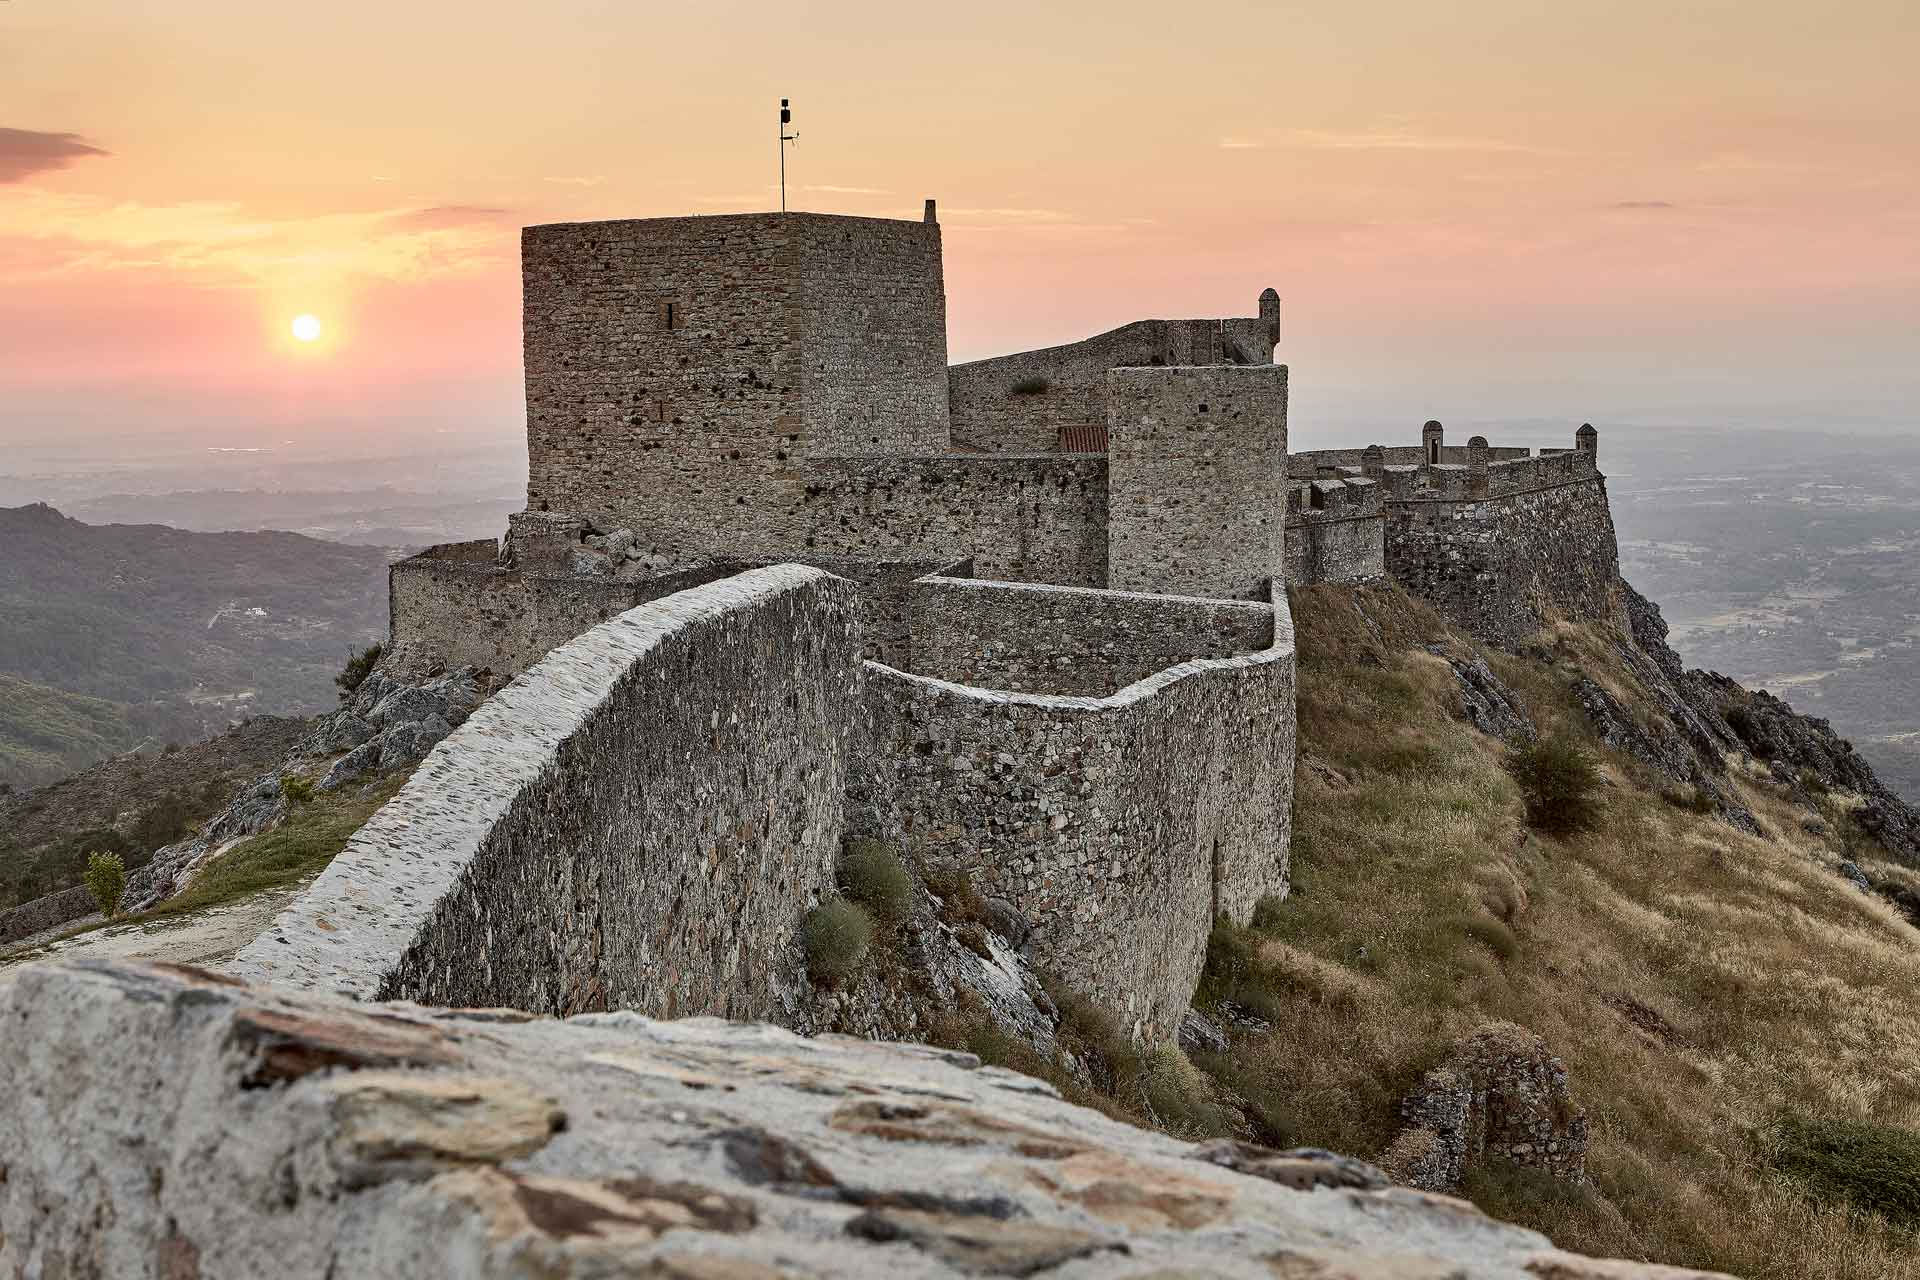 Alentejo - Festung in Marvao